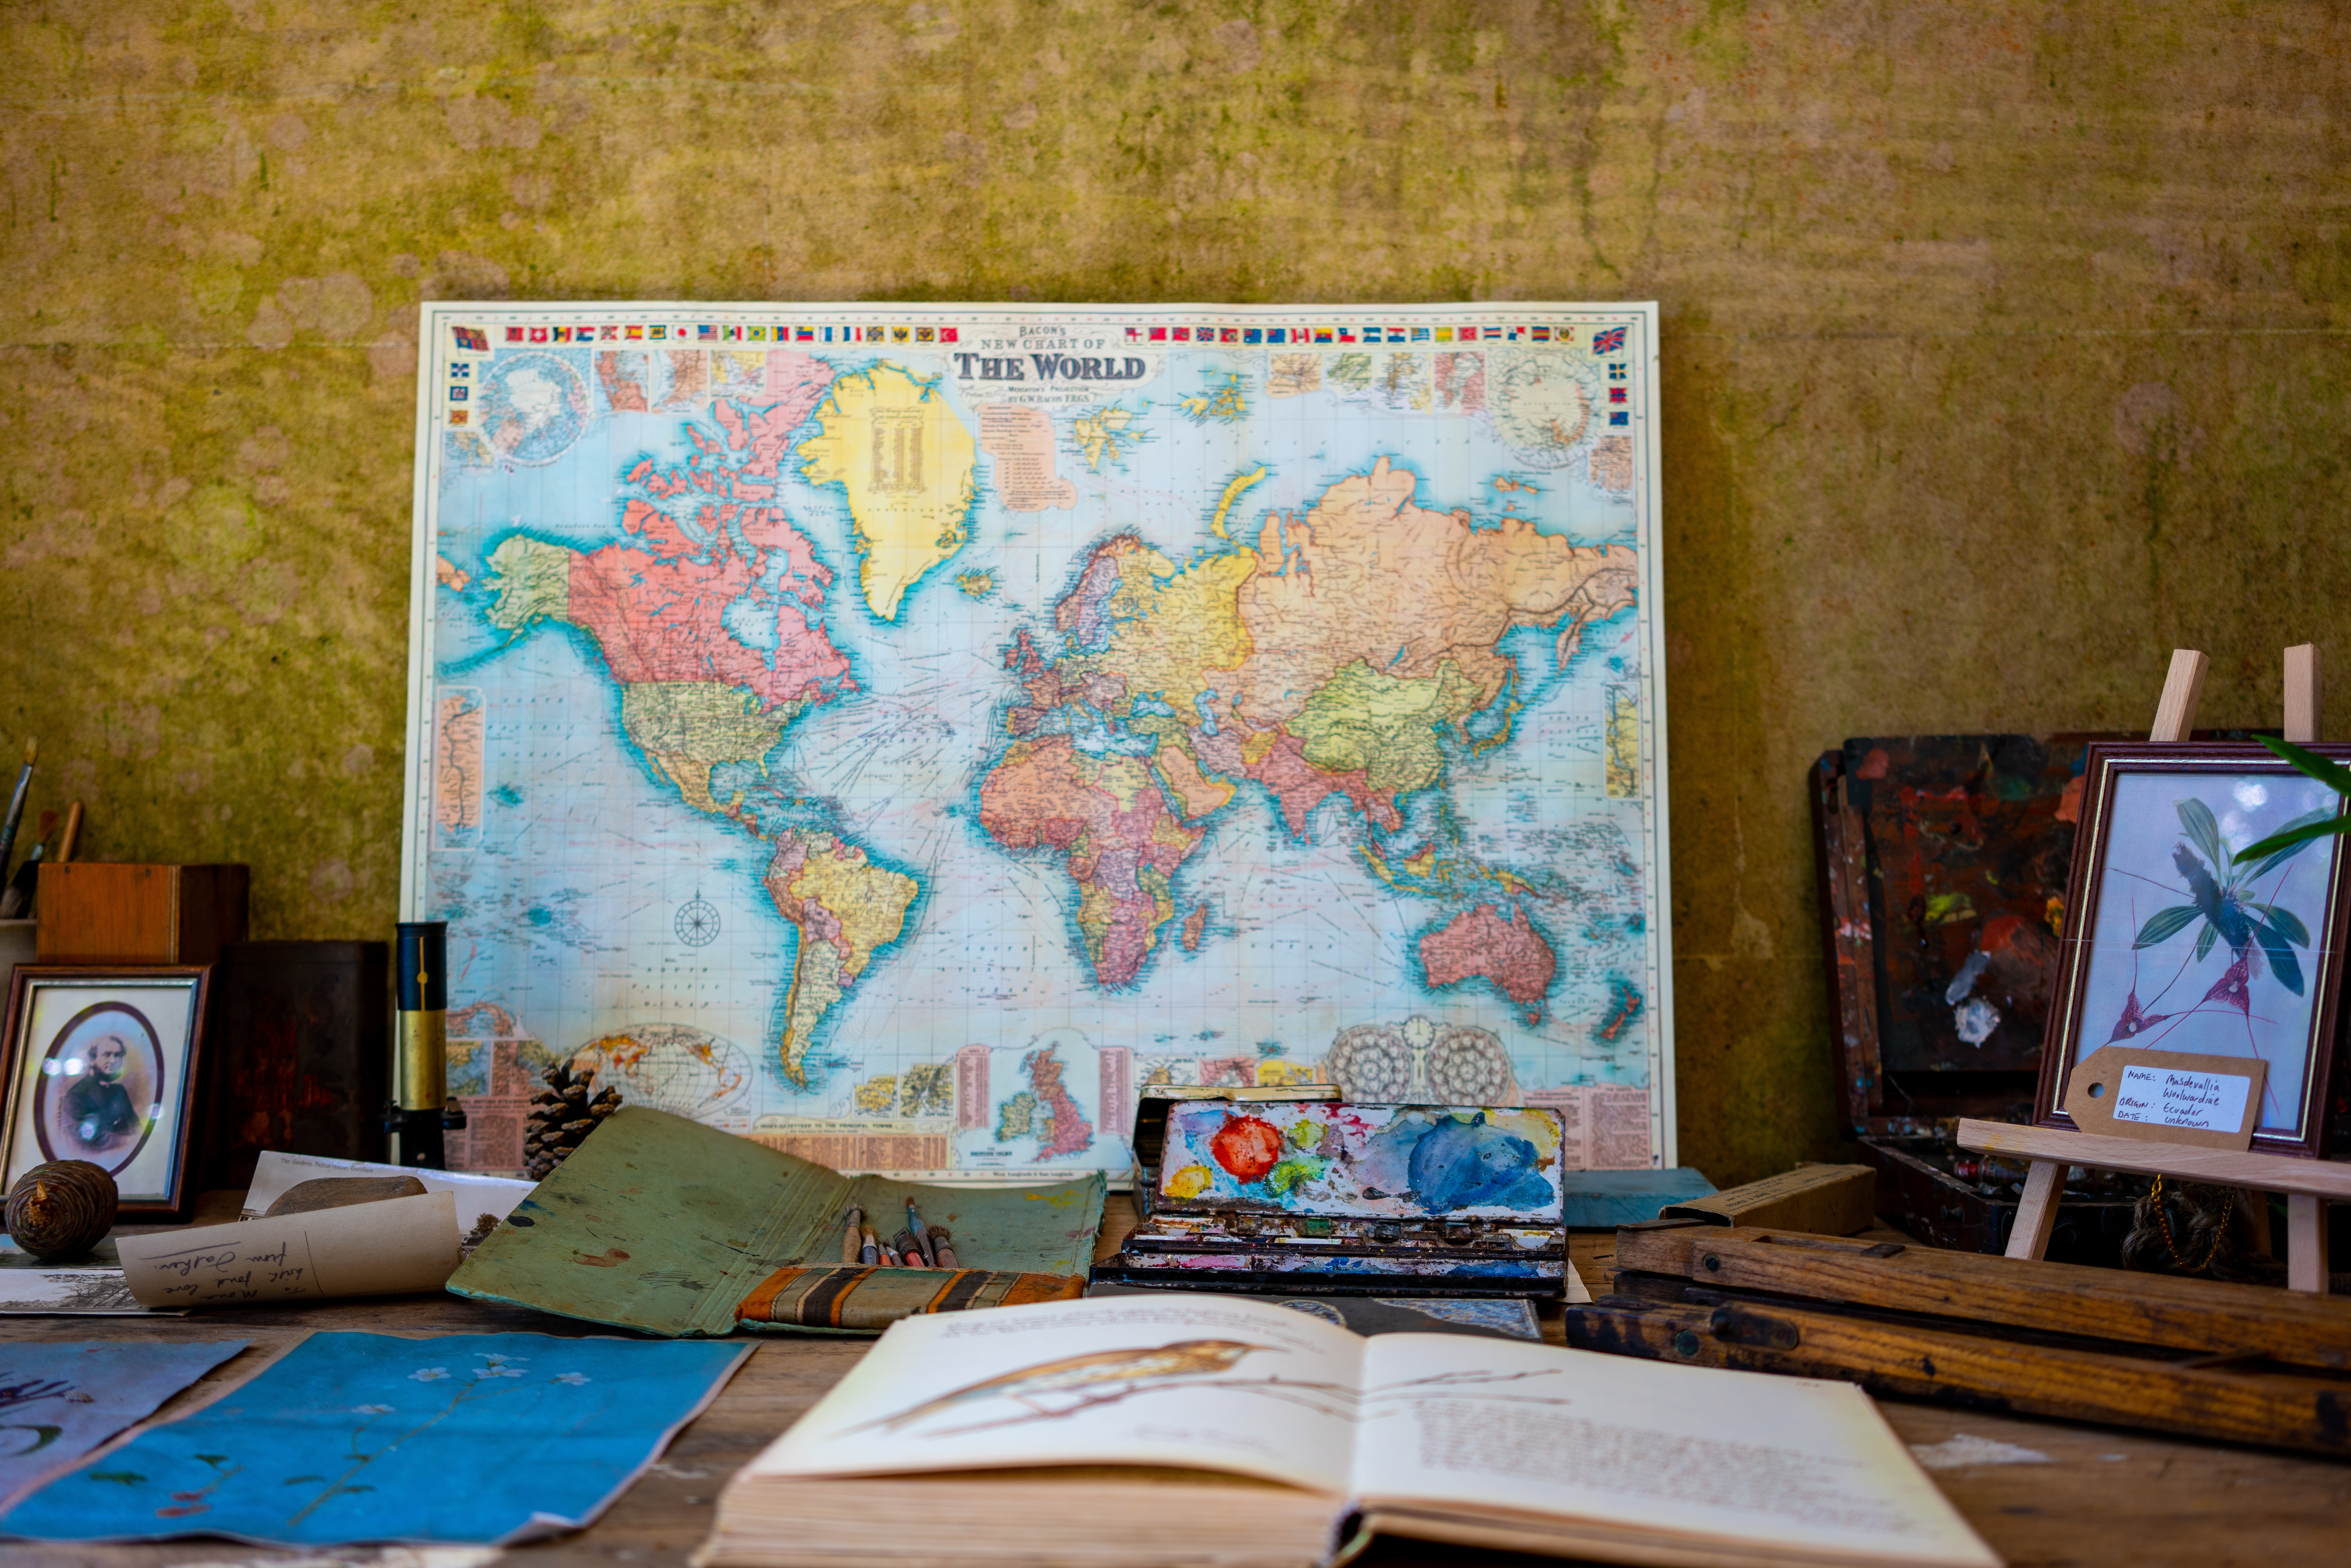 world-map-near-book-and-easel